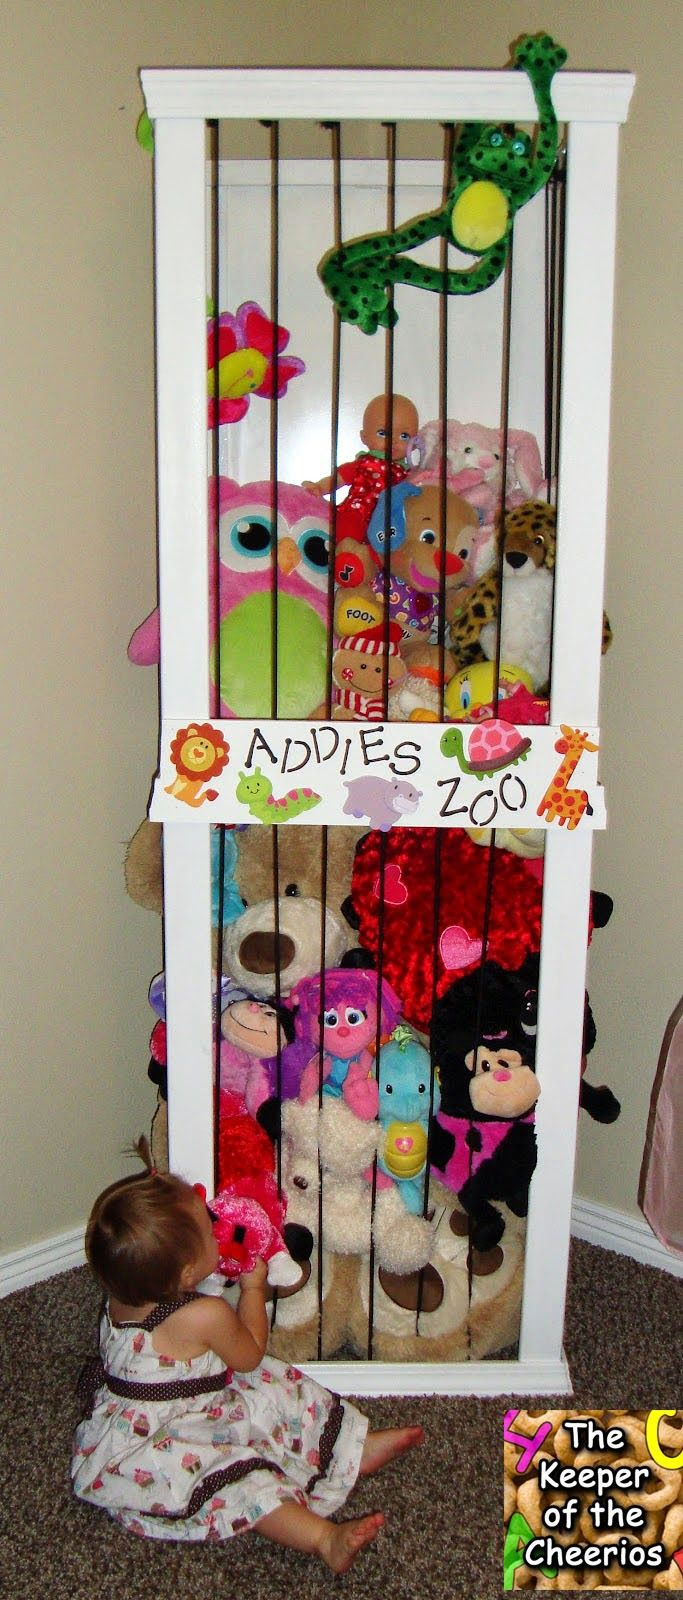 17 best ideas about stuffed animal zoo on pinterest. Black Bedroom Furniture Sets. Home Design Ideas